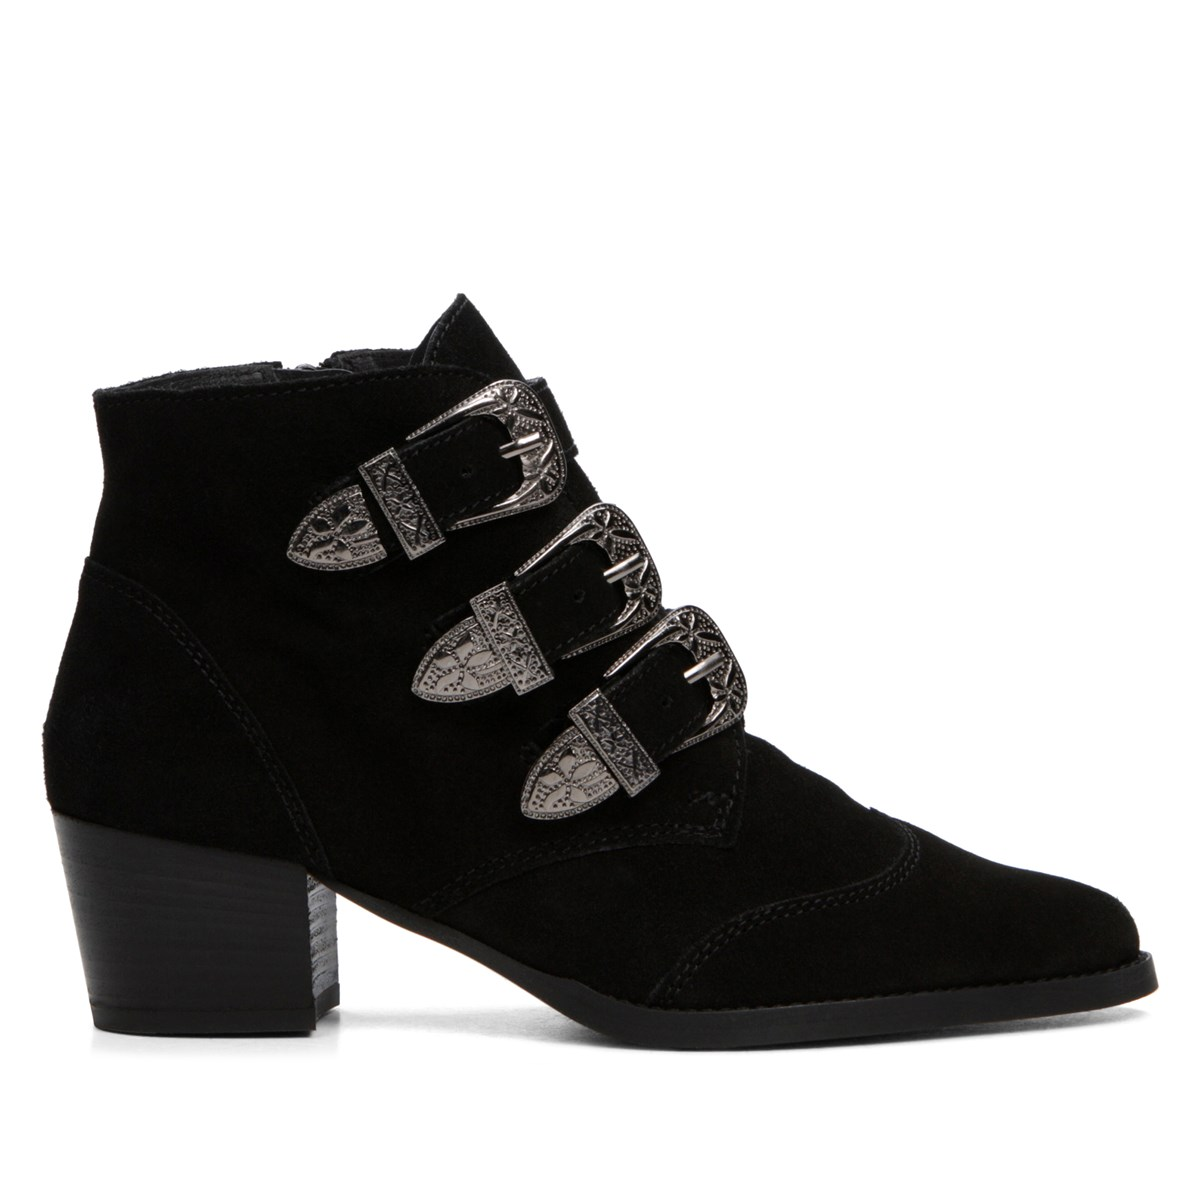 Women's Black Leather Boot